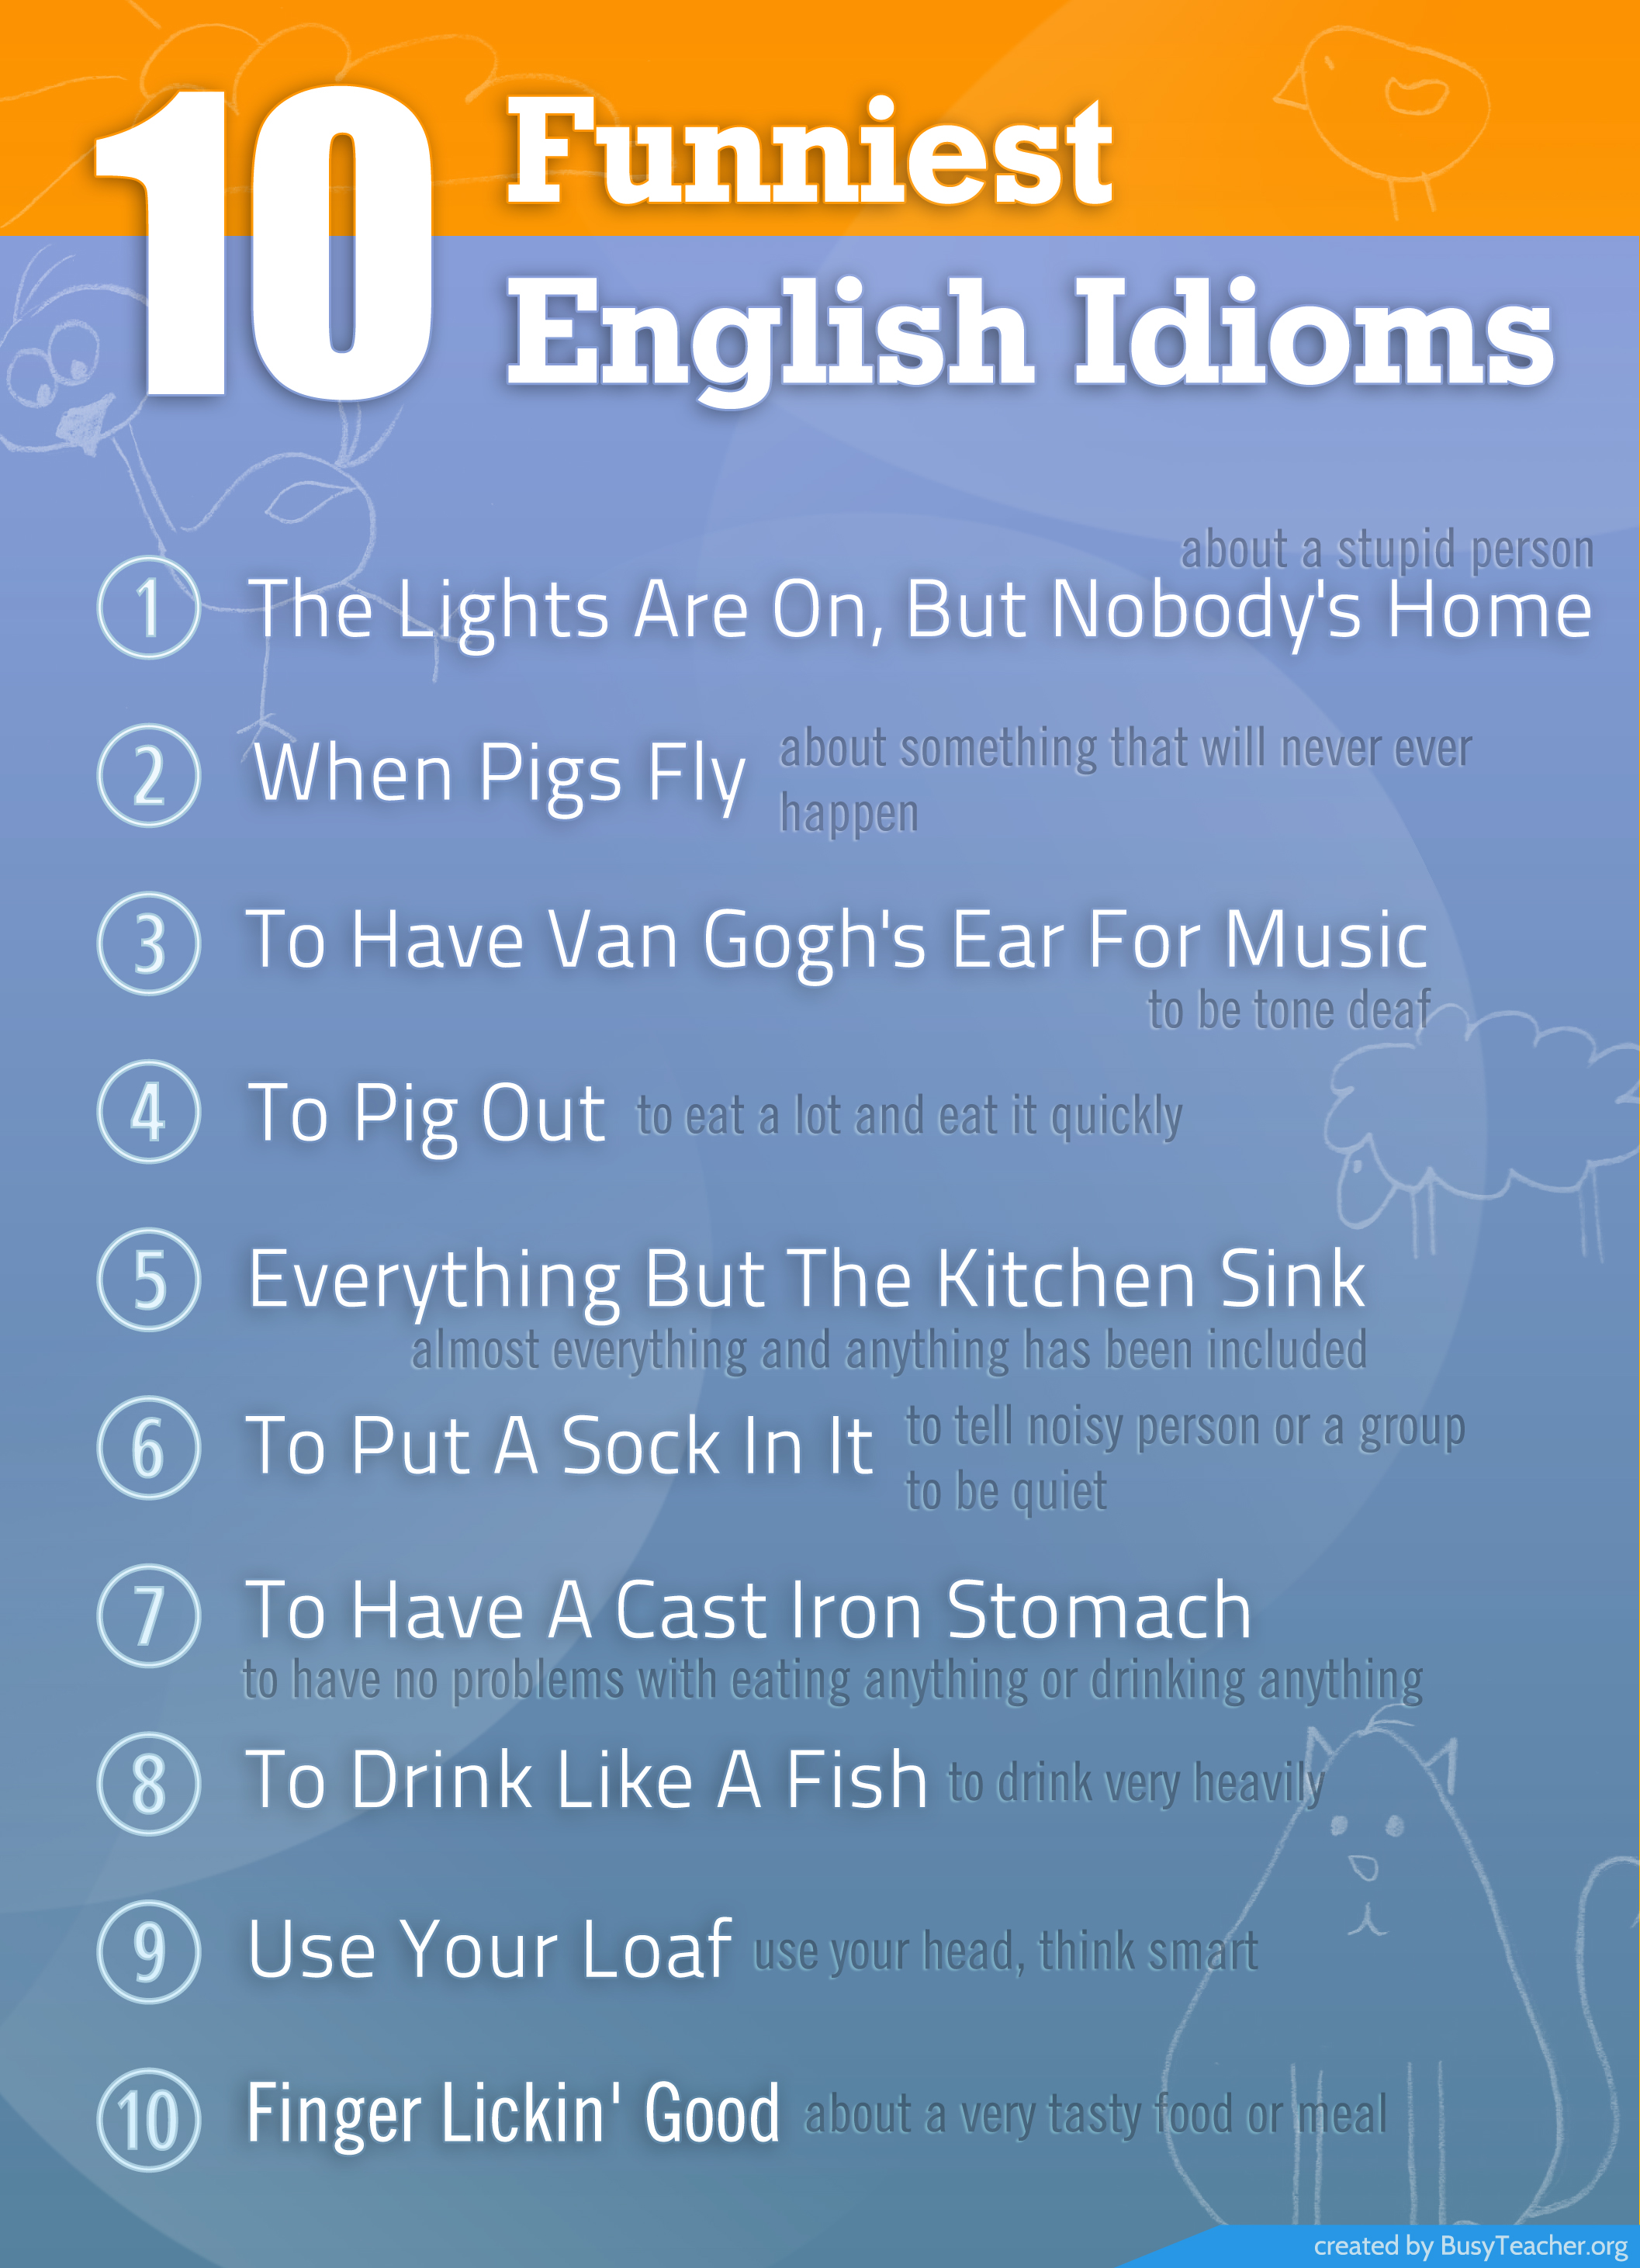 Funny English Idioms